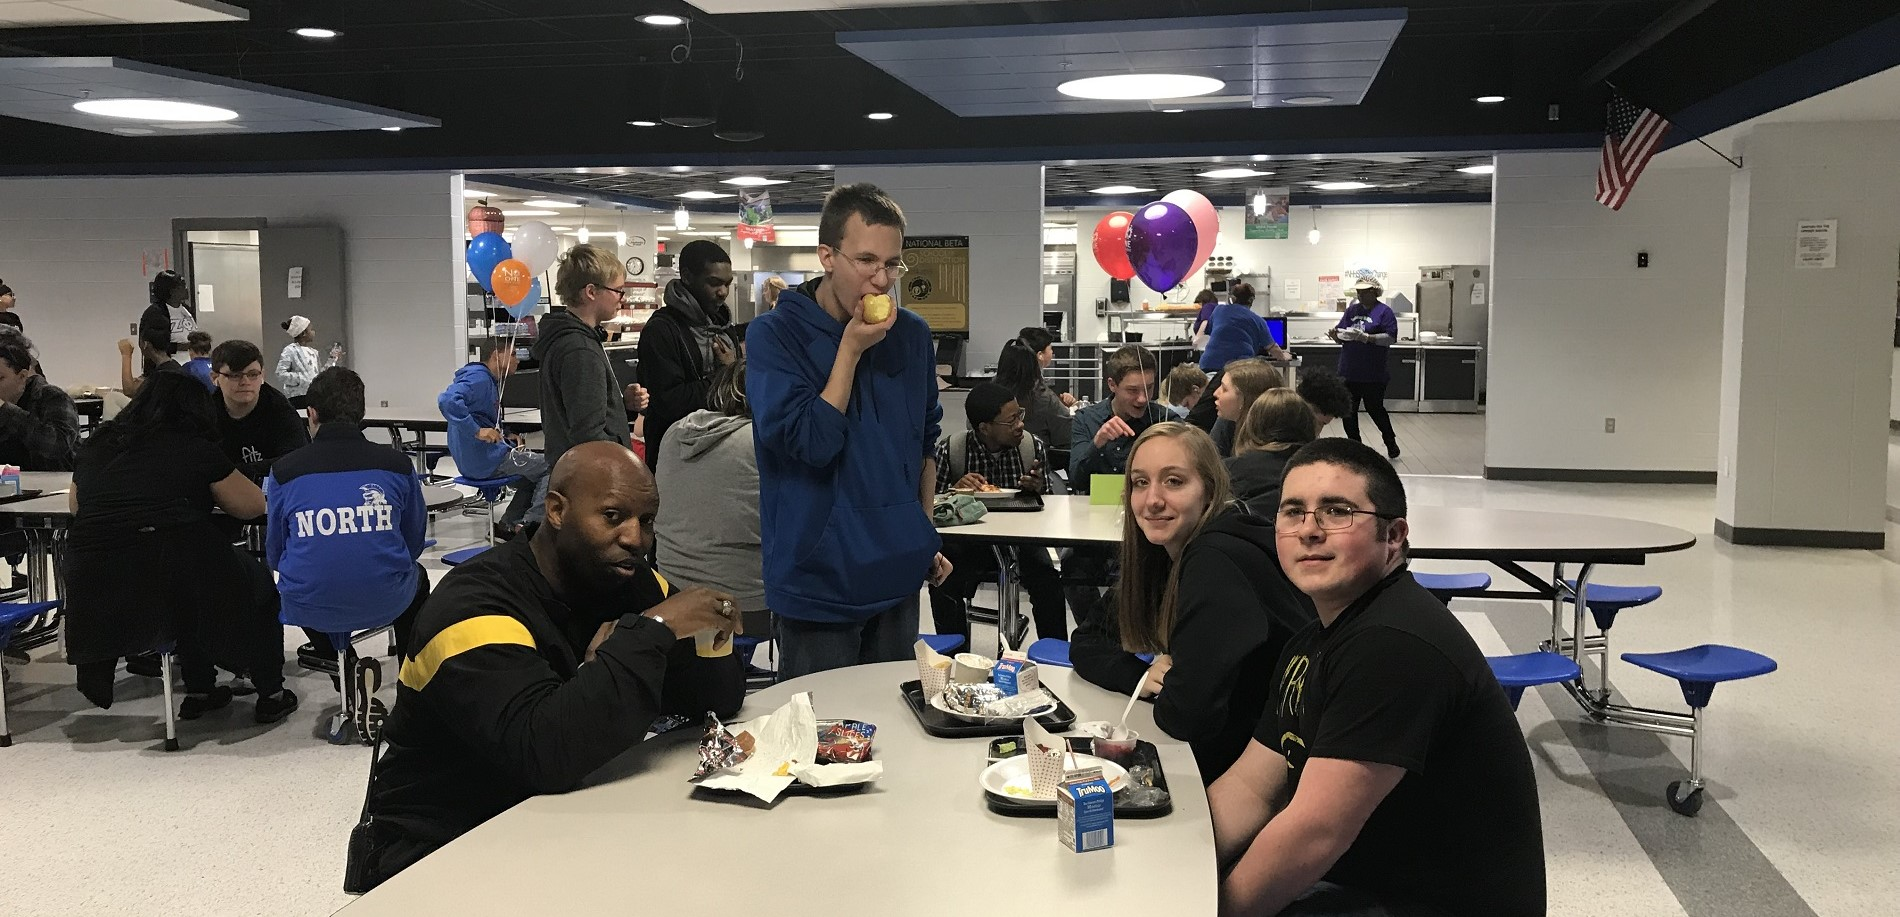 JROTC instructor Youngblood enjoys lunch with students